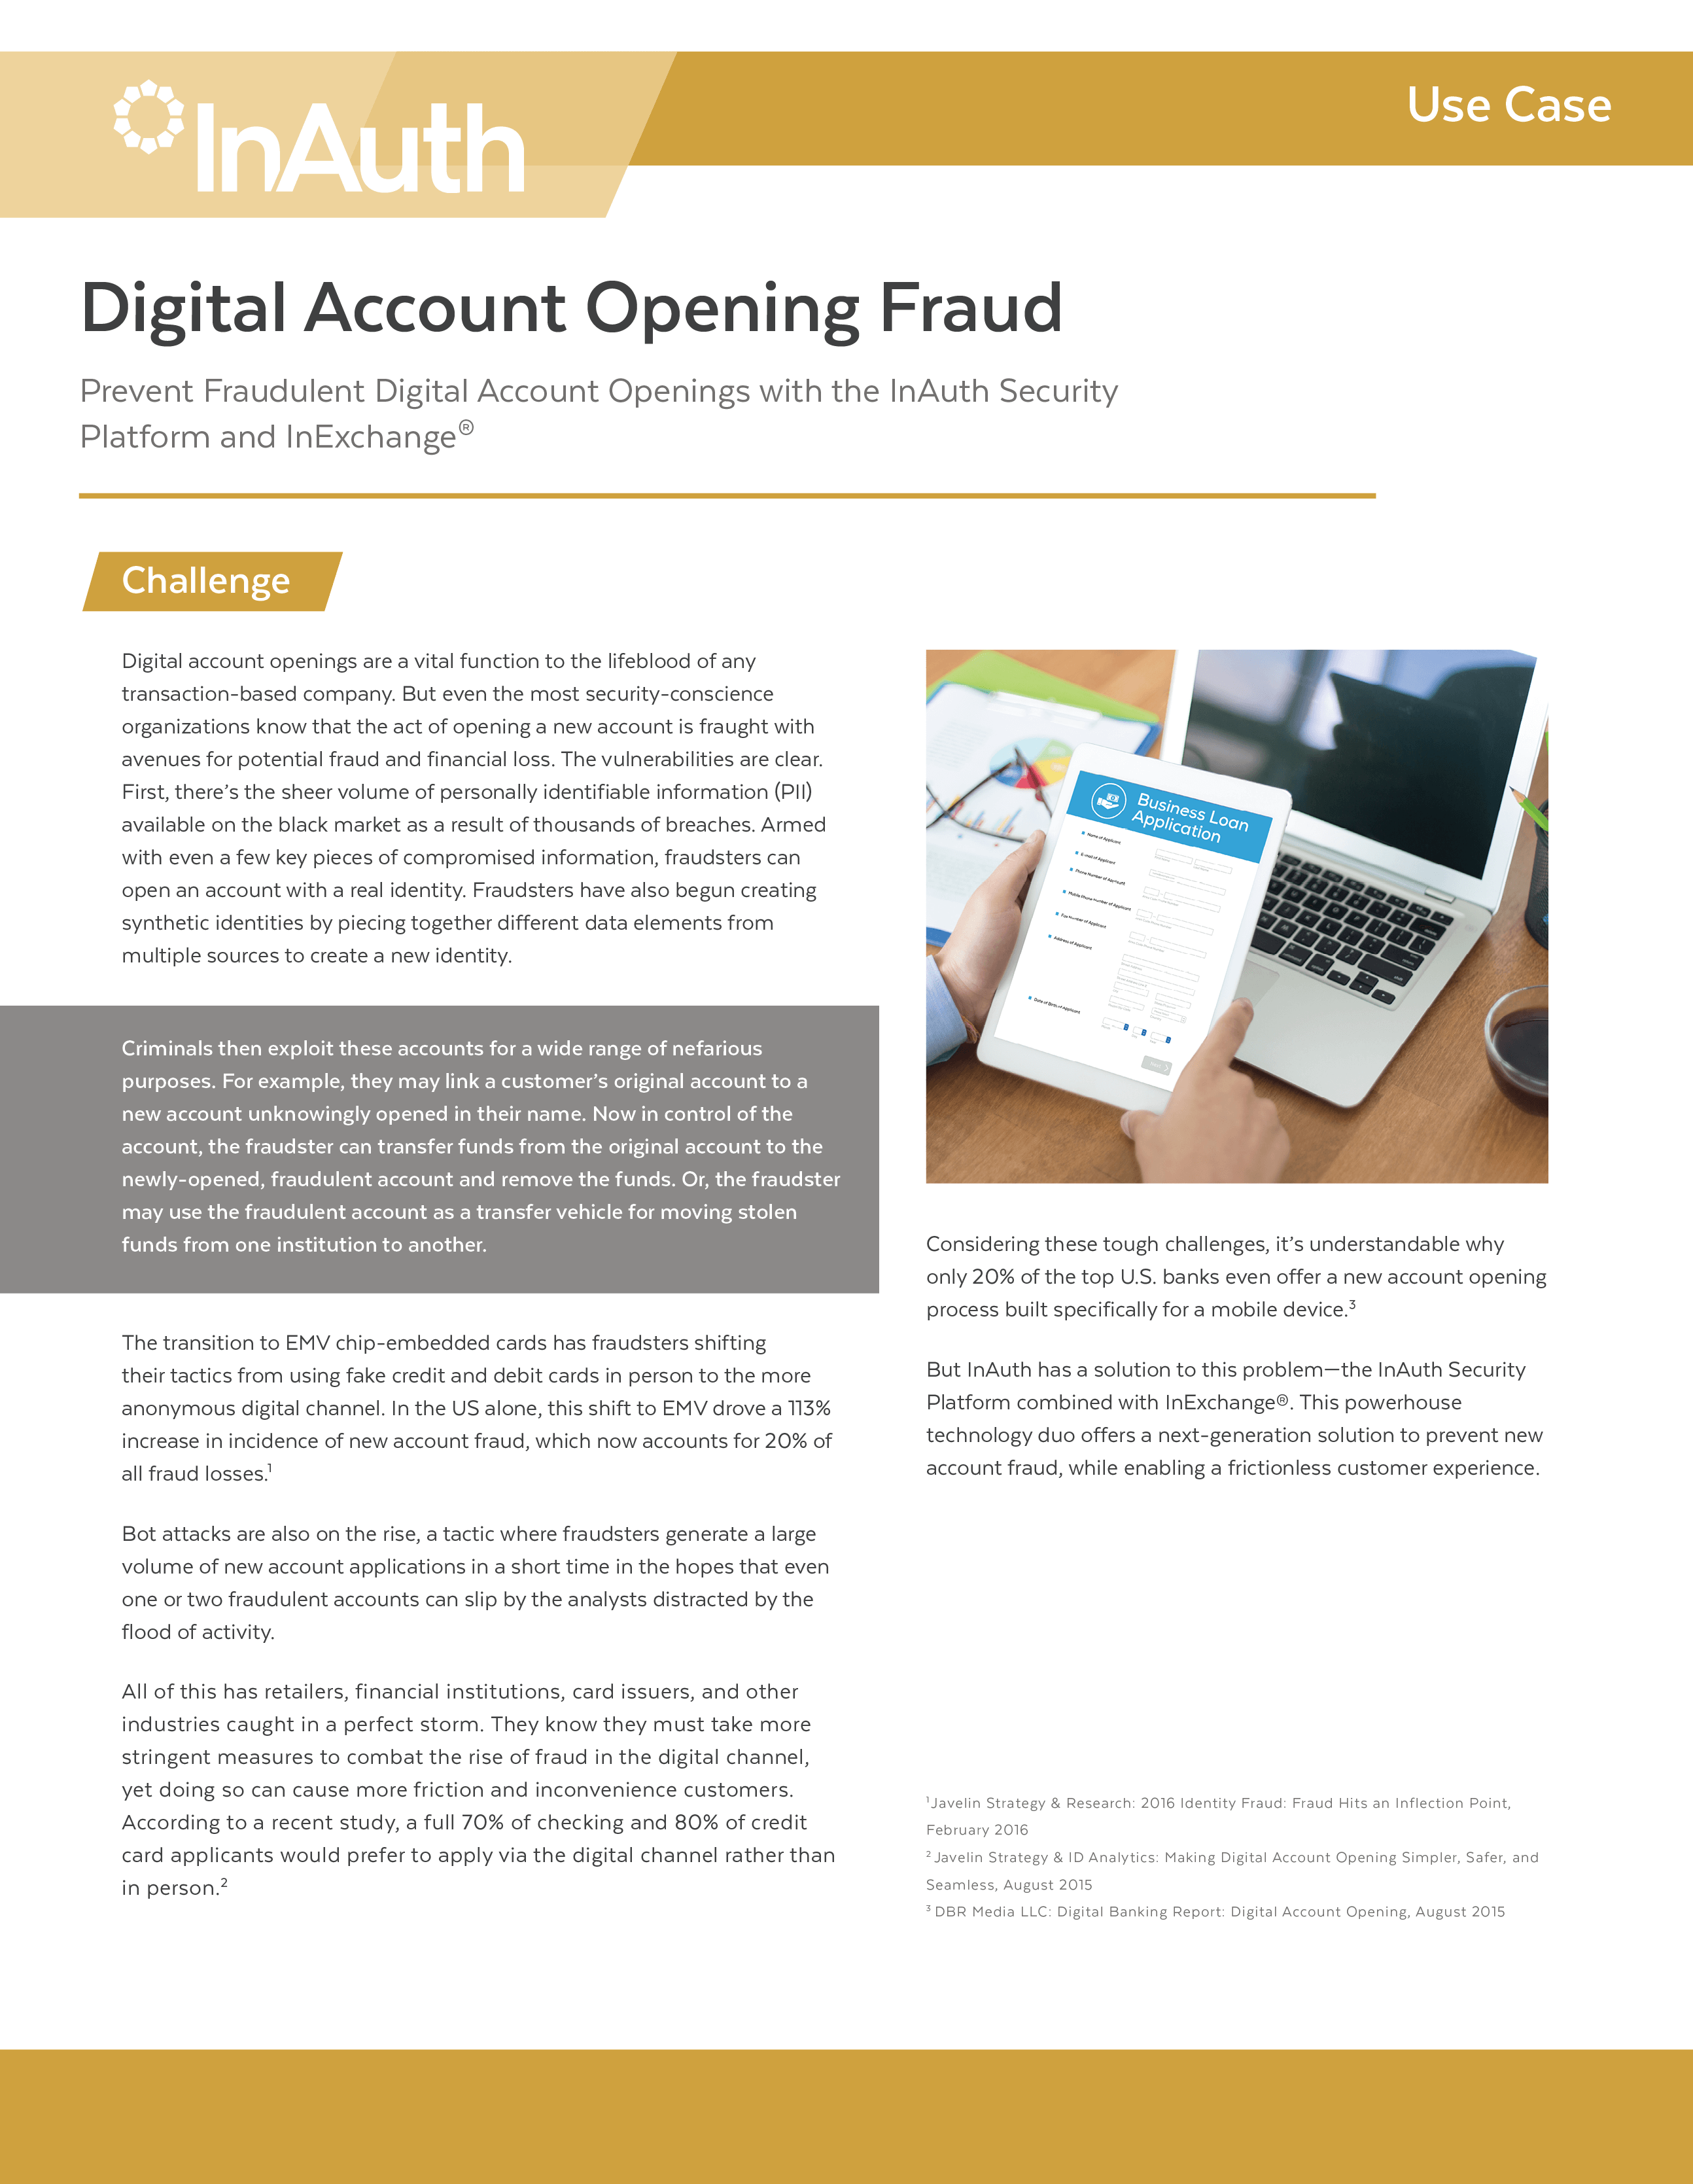 Fight Fraudulent Digital Account Openings with InExchange<sup>®</sup>